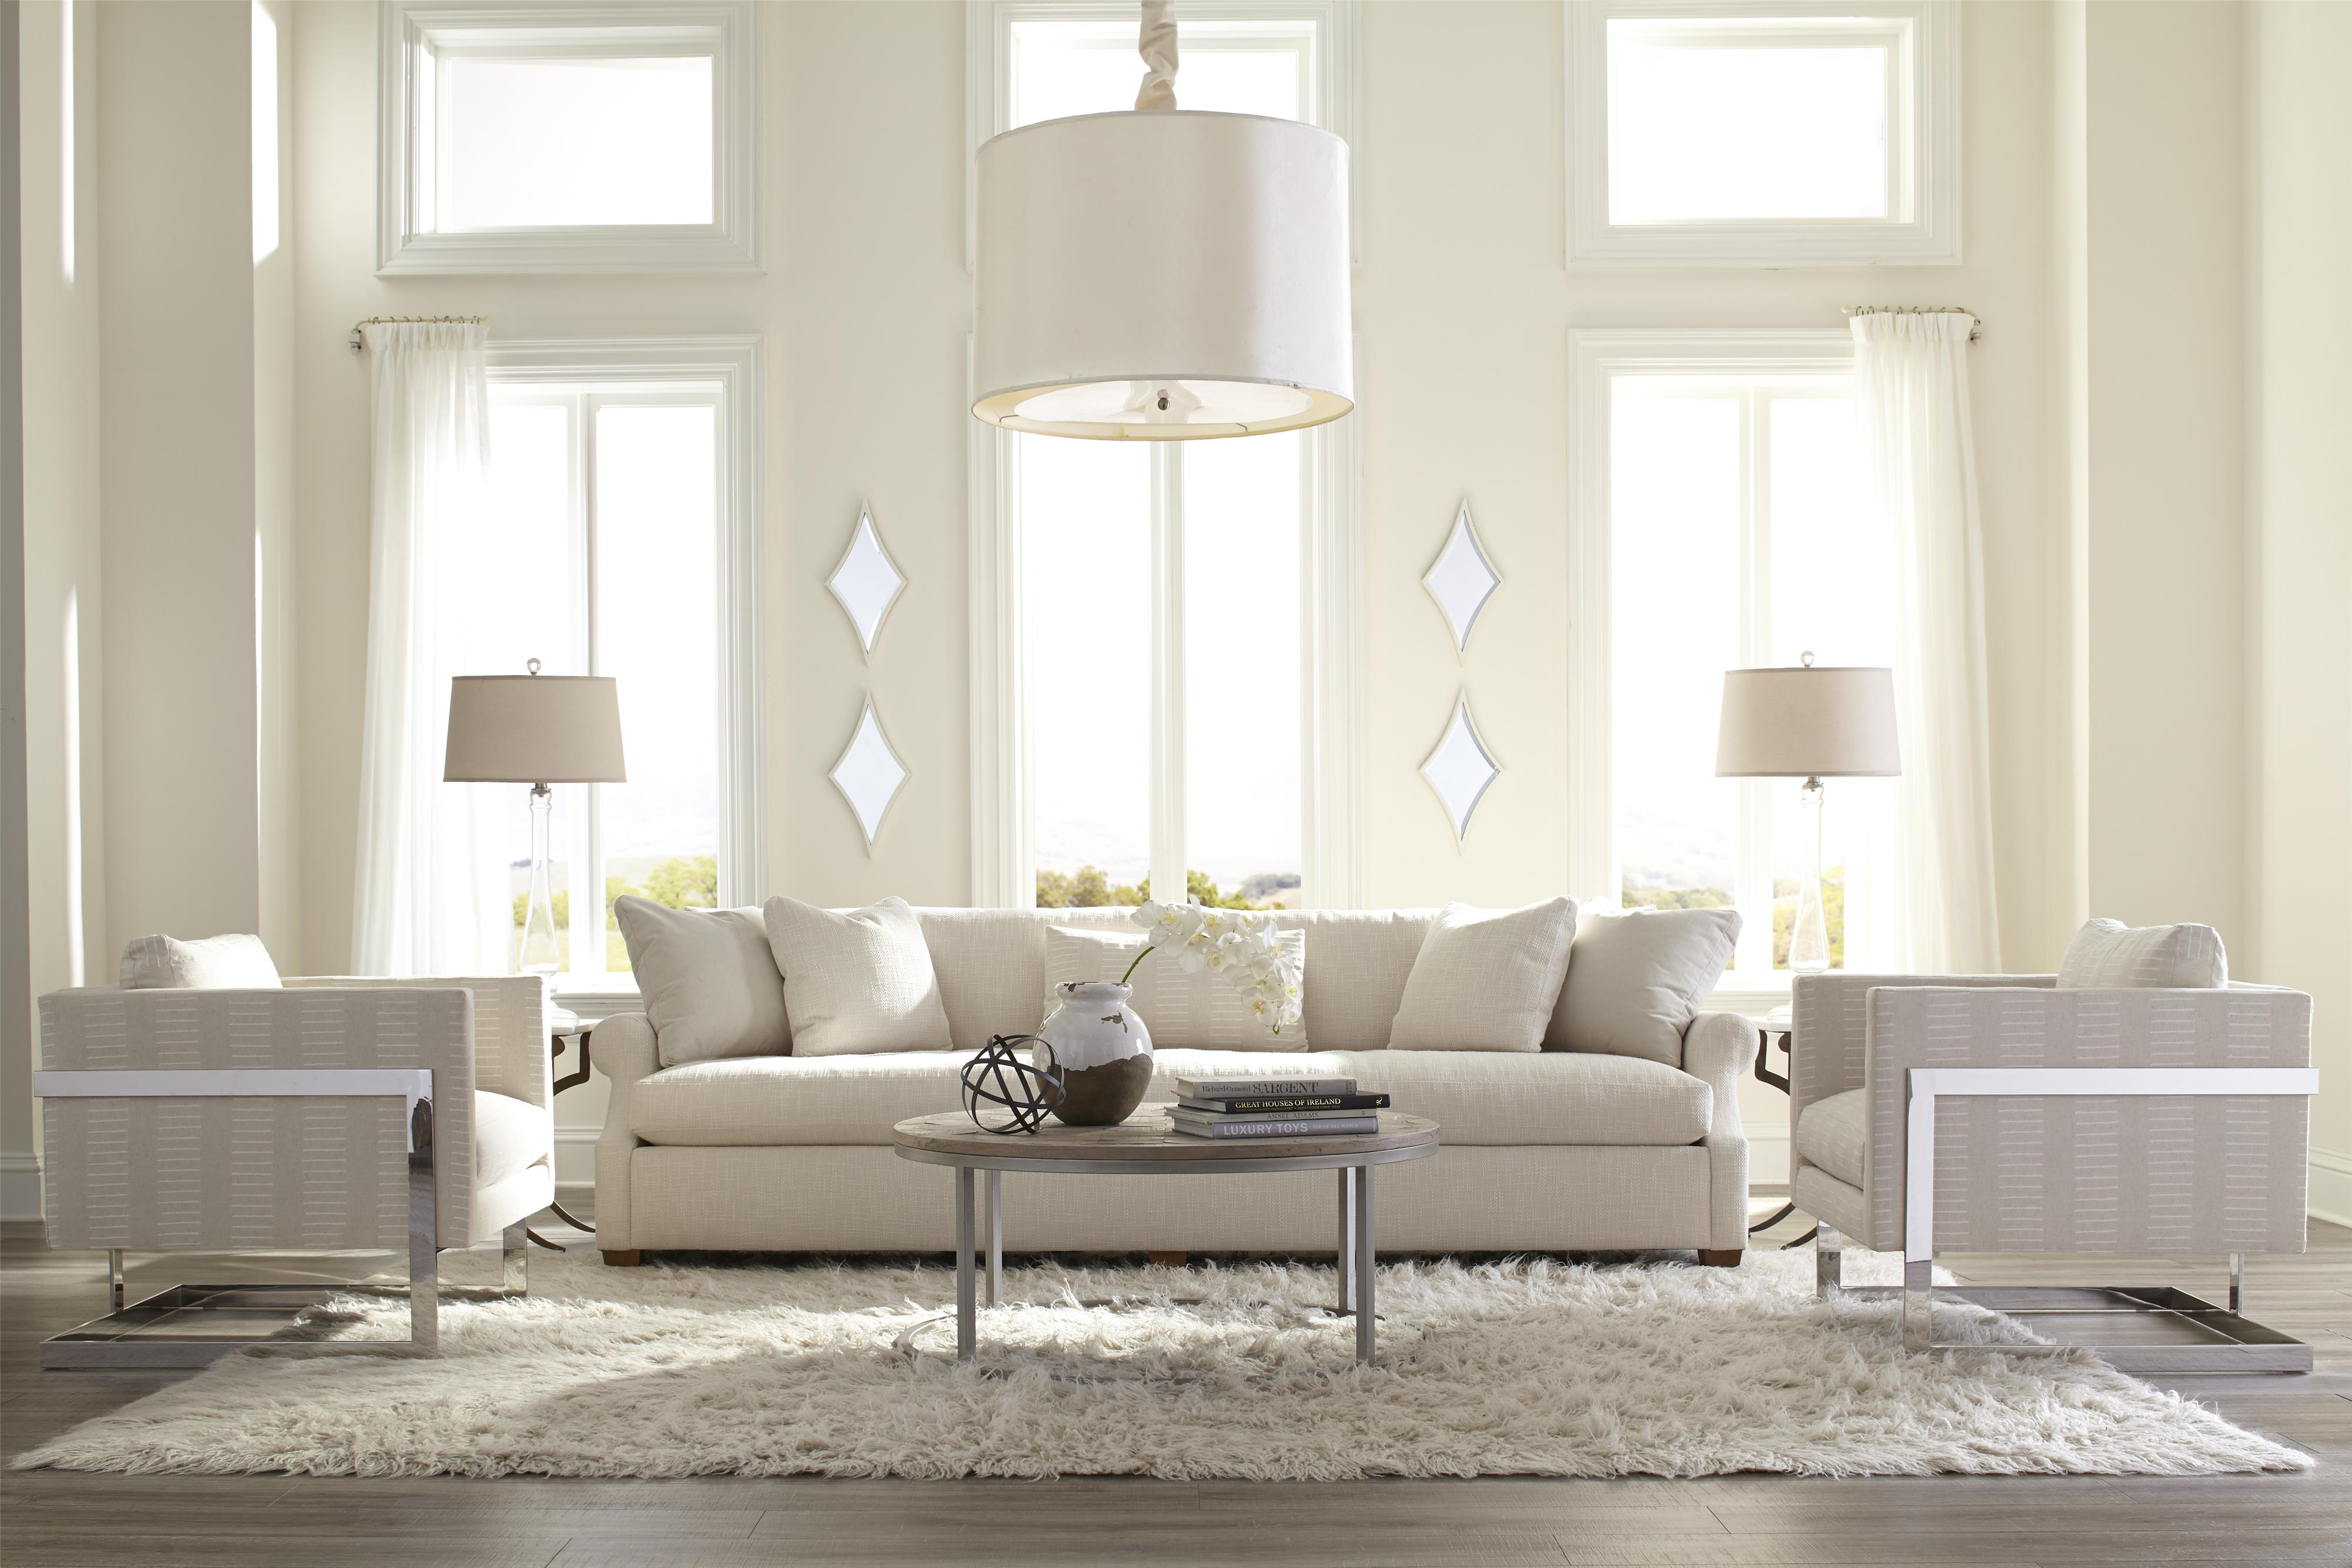 Robin Bruce Bristol Sectional | Sprintz Furniture | Sectional Sofas  Nashville, Franklin, And Greater Tennessee